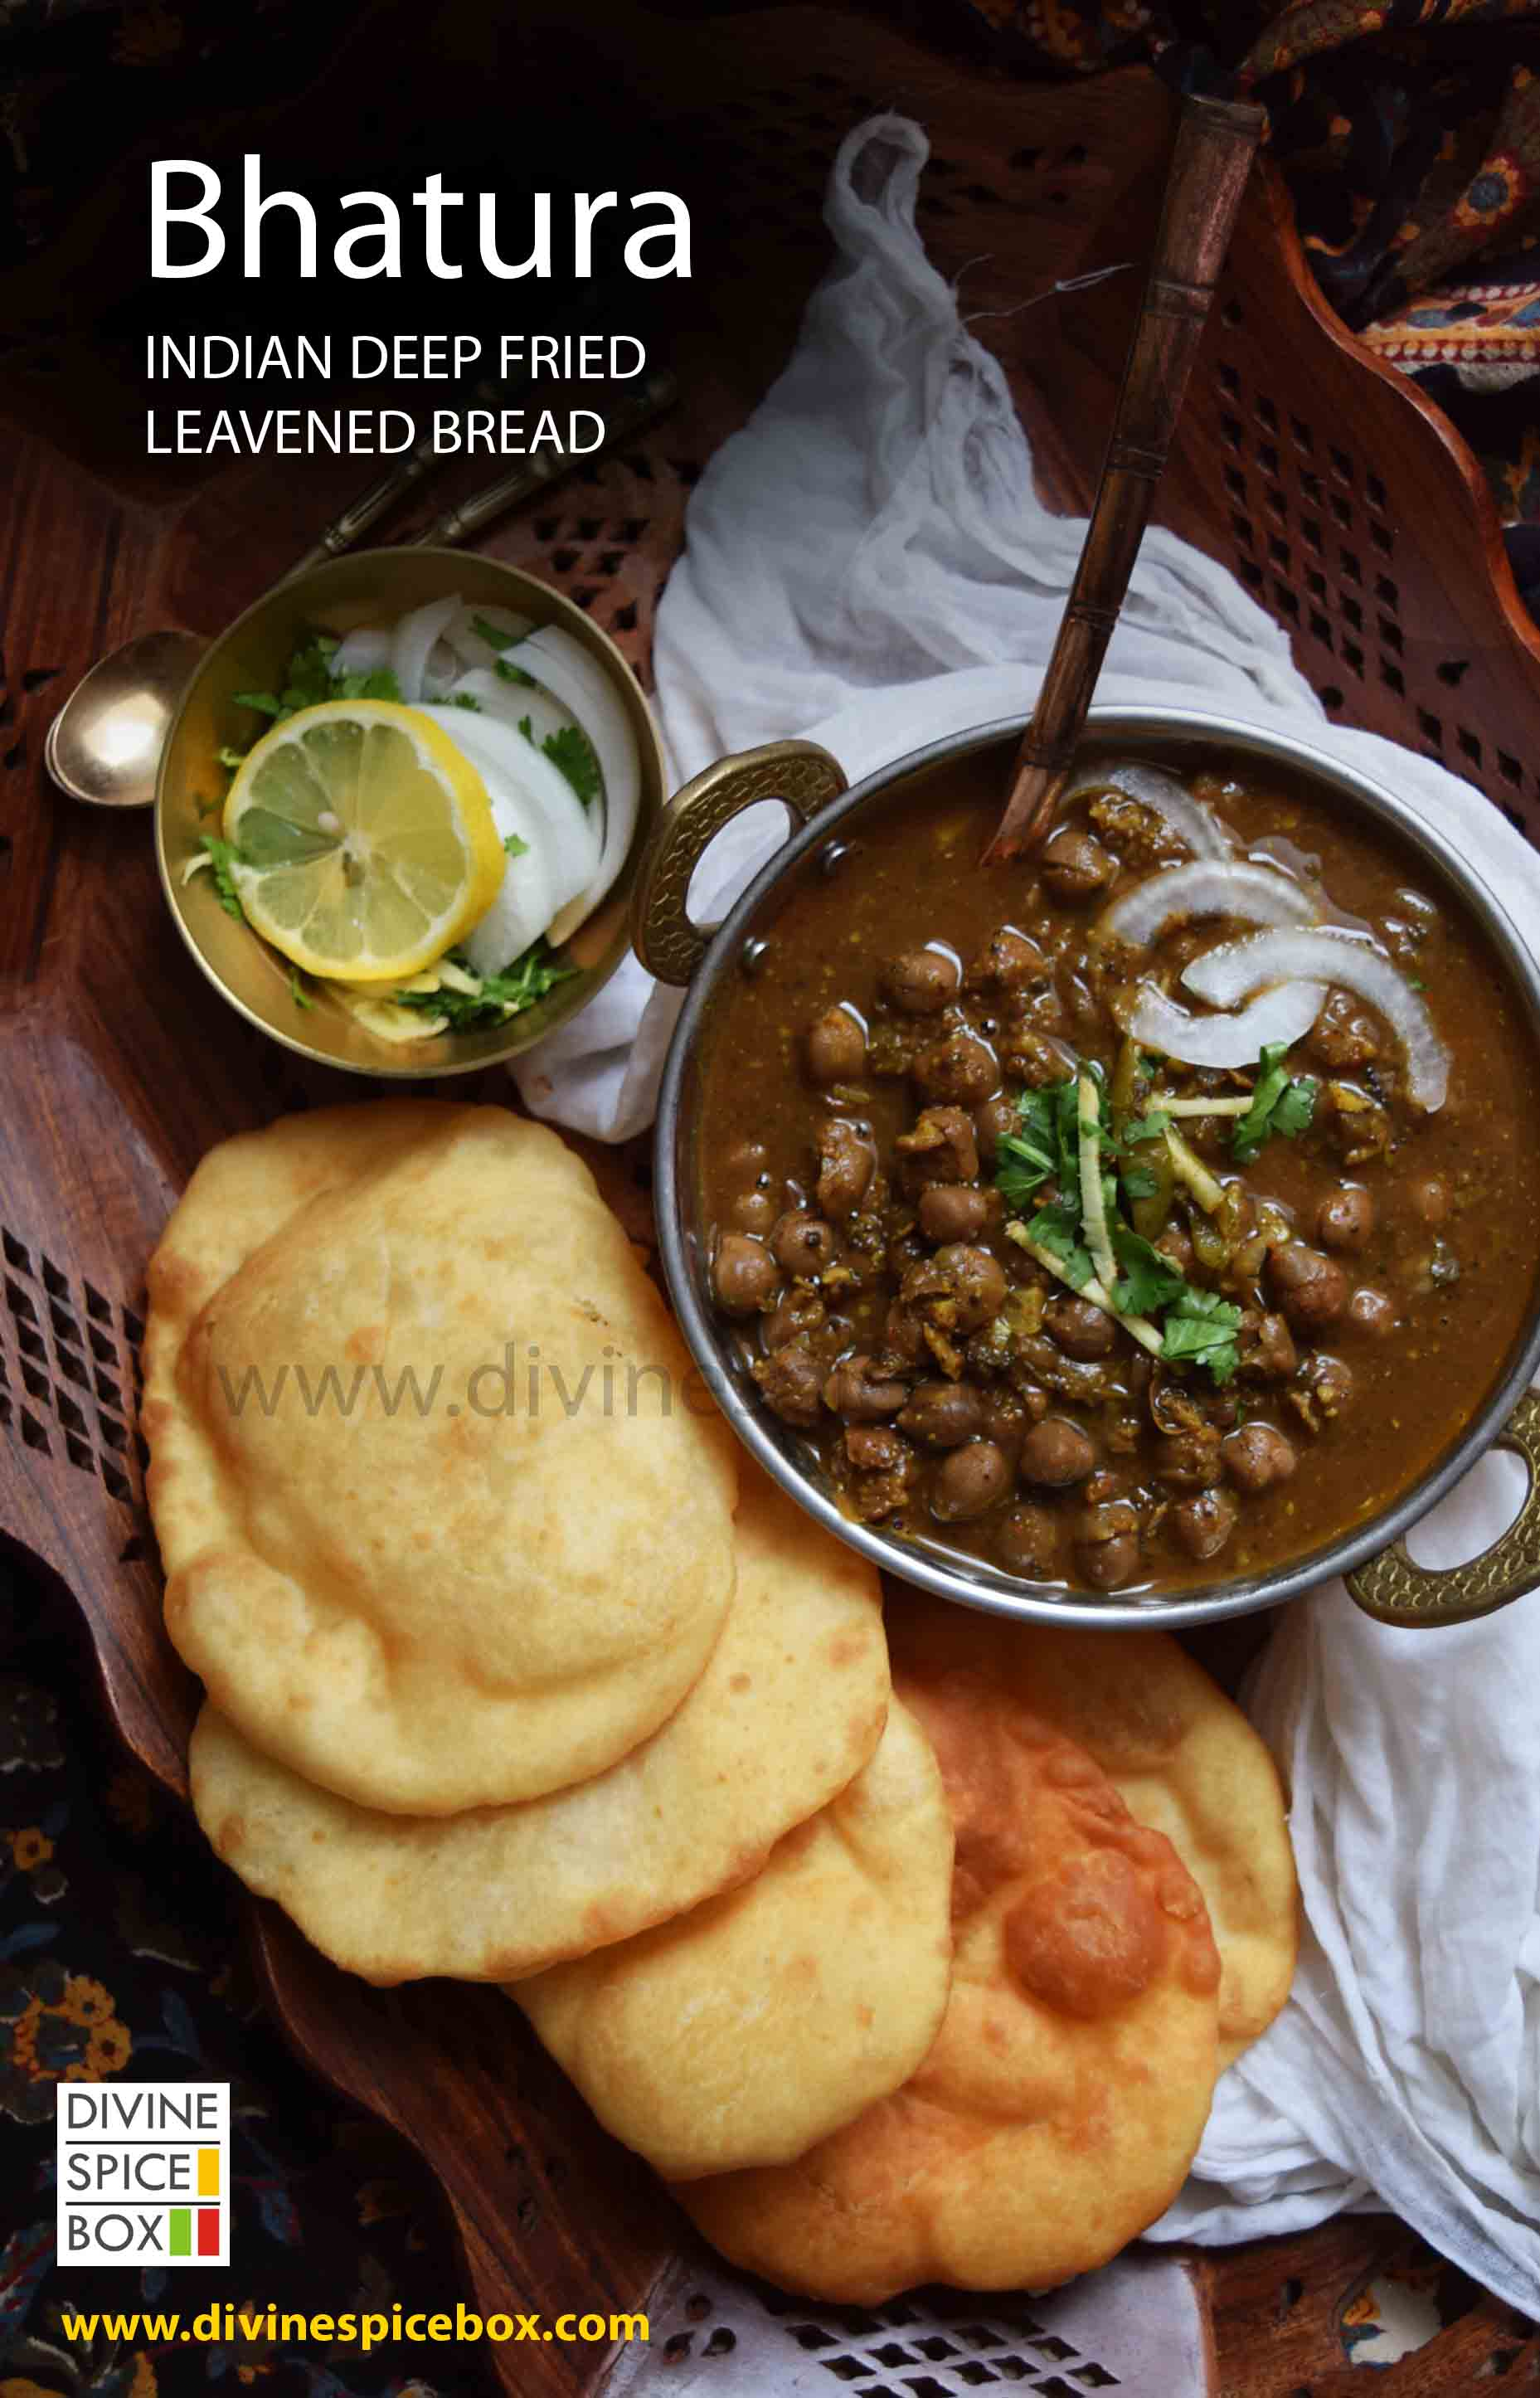 Bhatura - Indian Deep Fried Leavened Bread